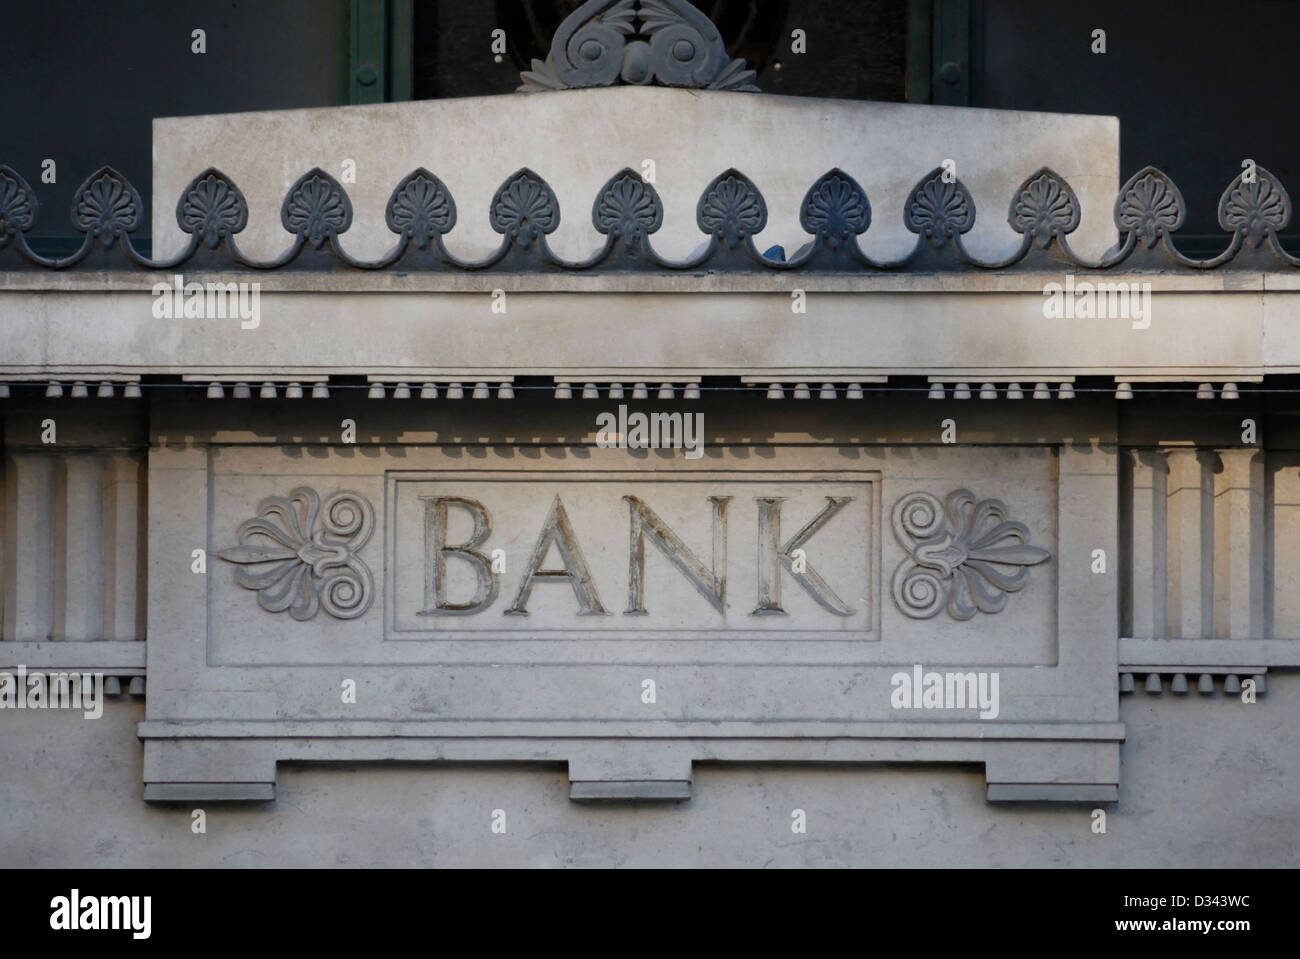 Ornate sign for a bank carved in the masonry above the entrance. The building is no longer used as a bank. - Stock Image